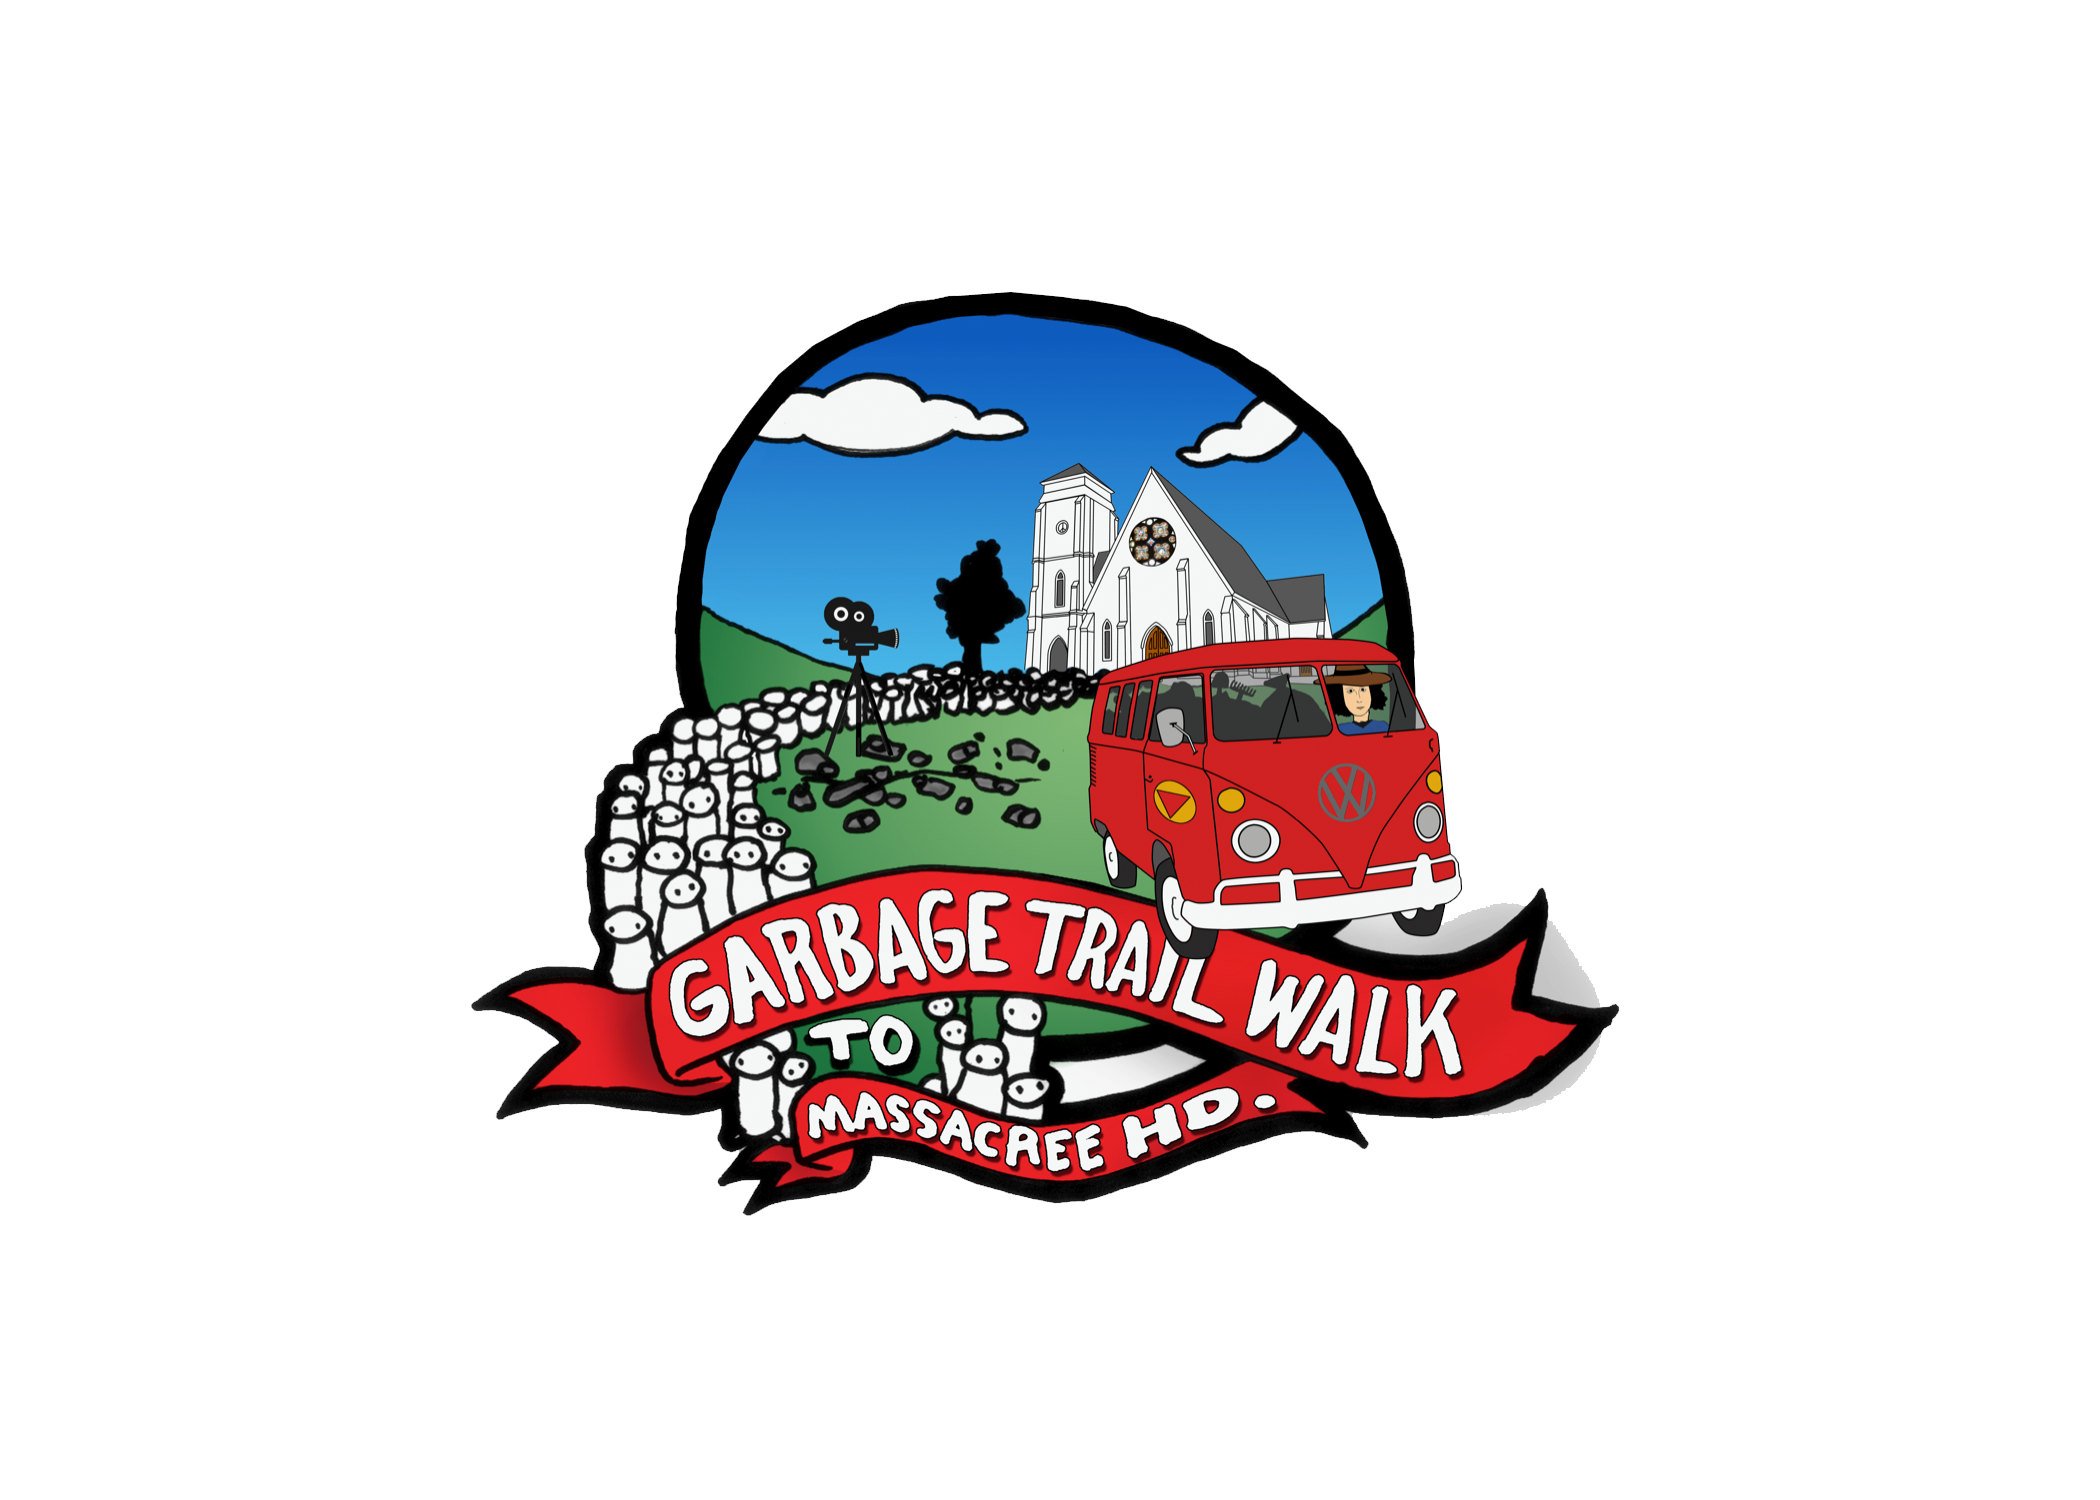 Garbage Trail Walk for Huntington's Disease